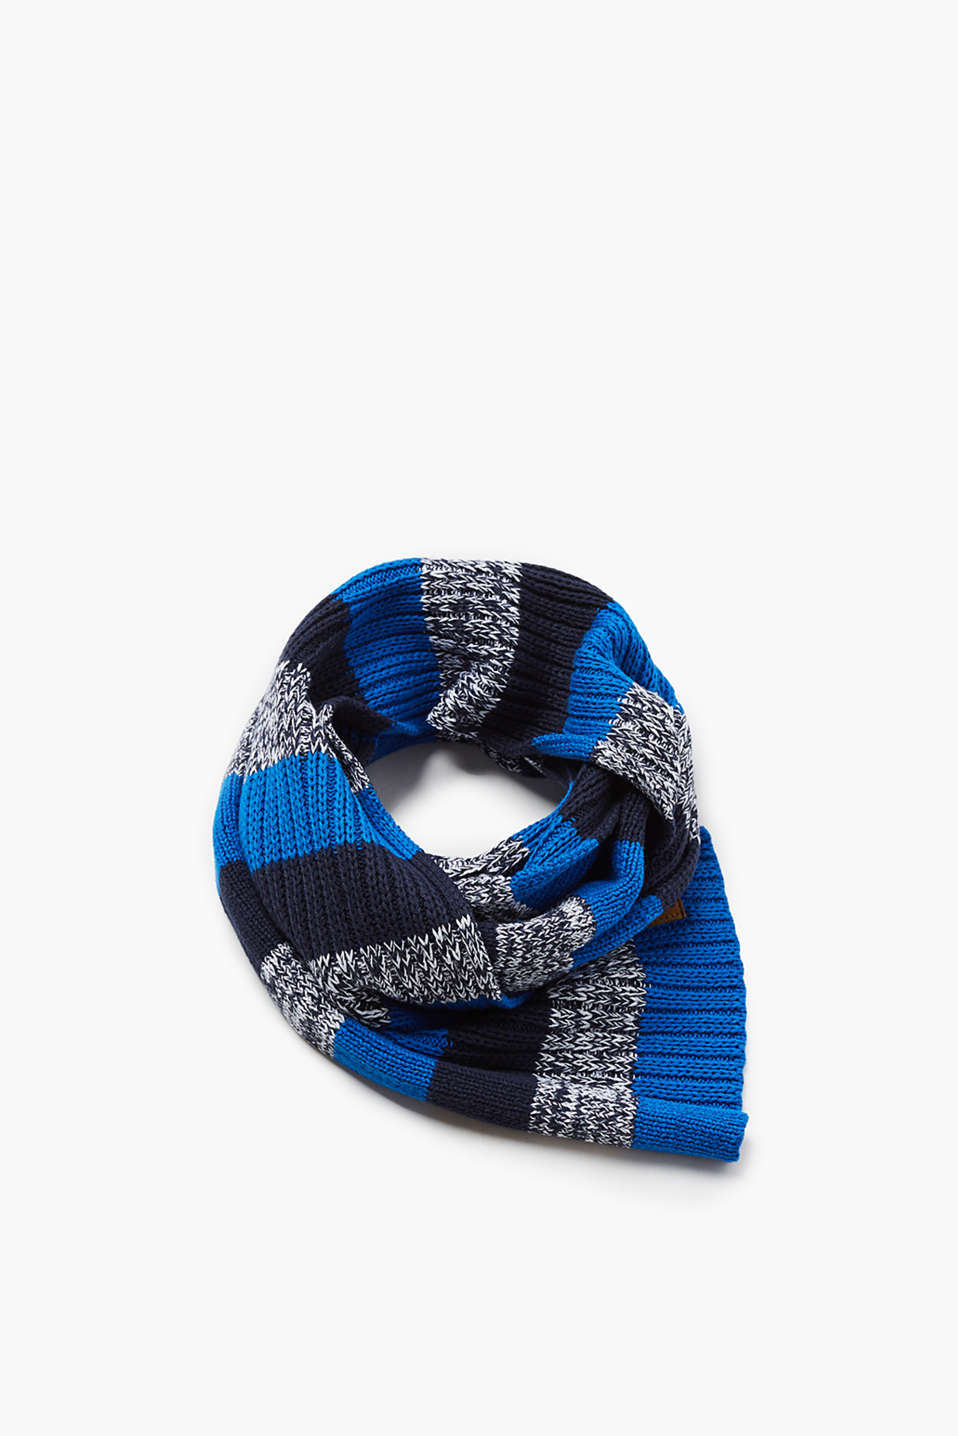 Esprit - Striped knit scarf, 100% cotton